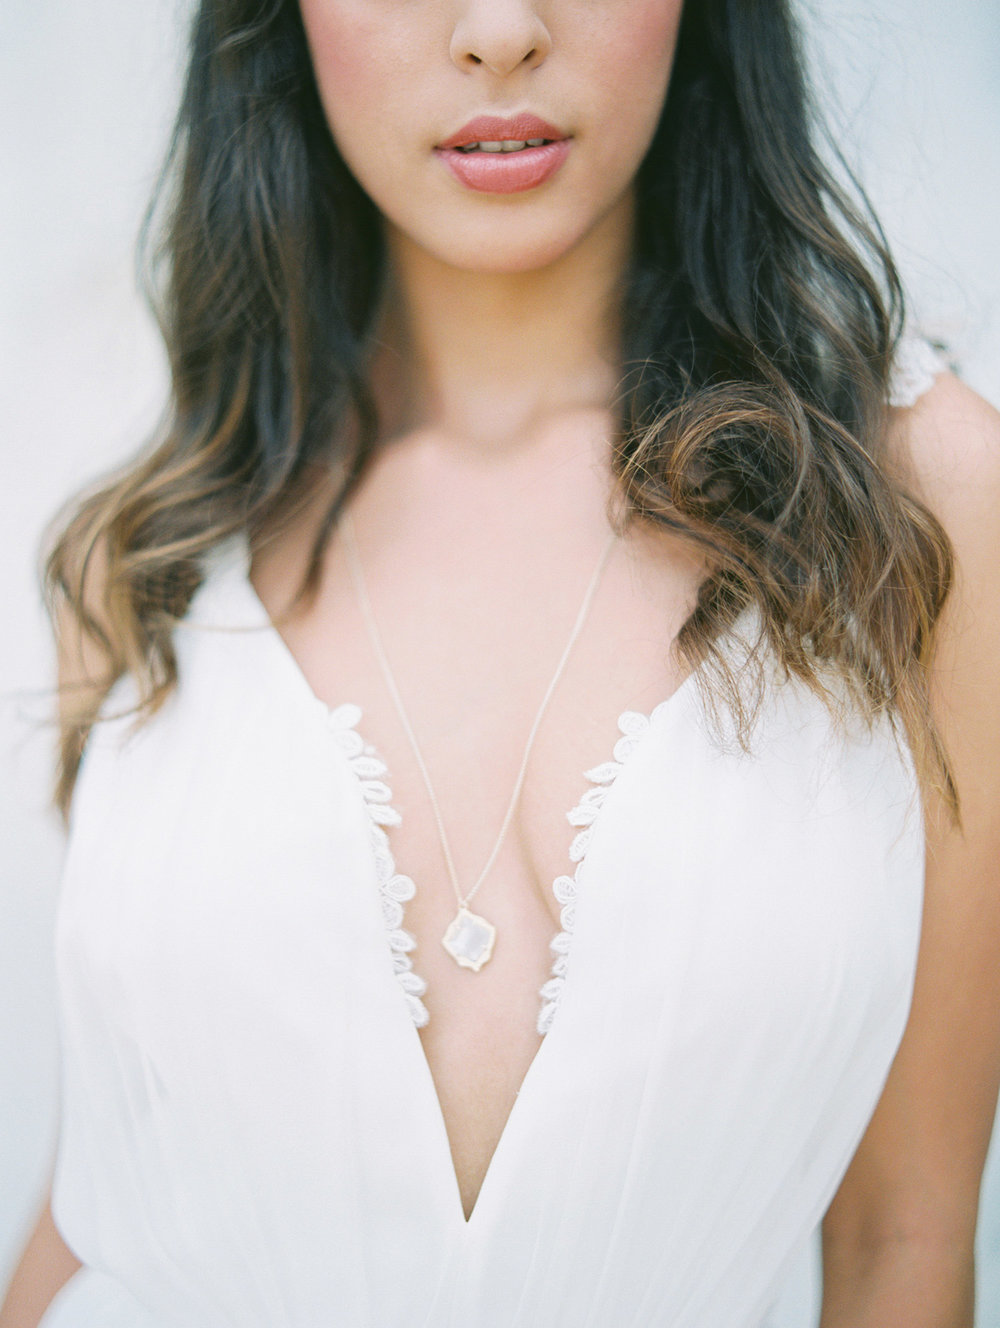 Bride wear a kendra scott necklace